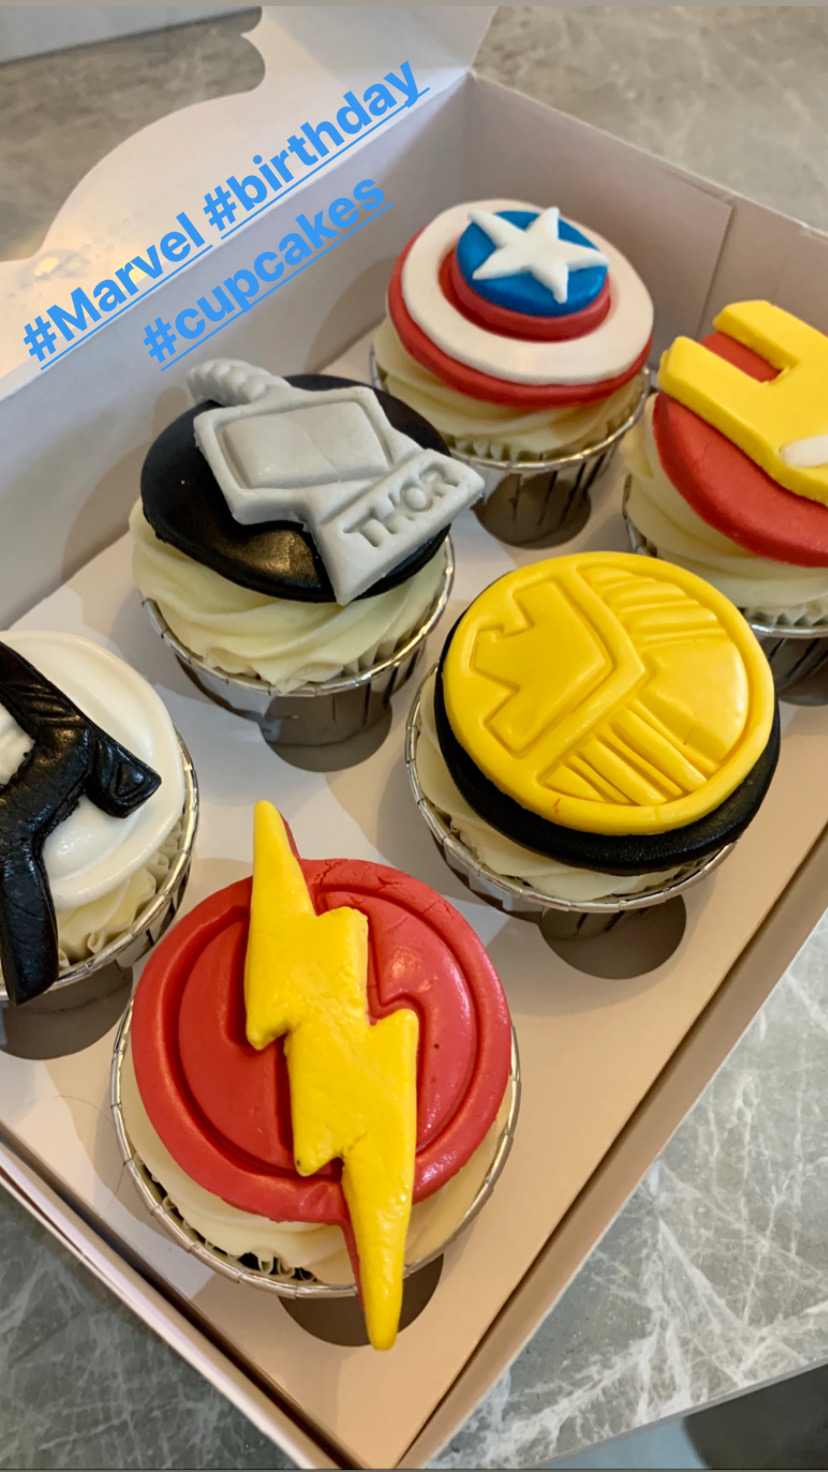 20.Avenger Themed Cupcakes